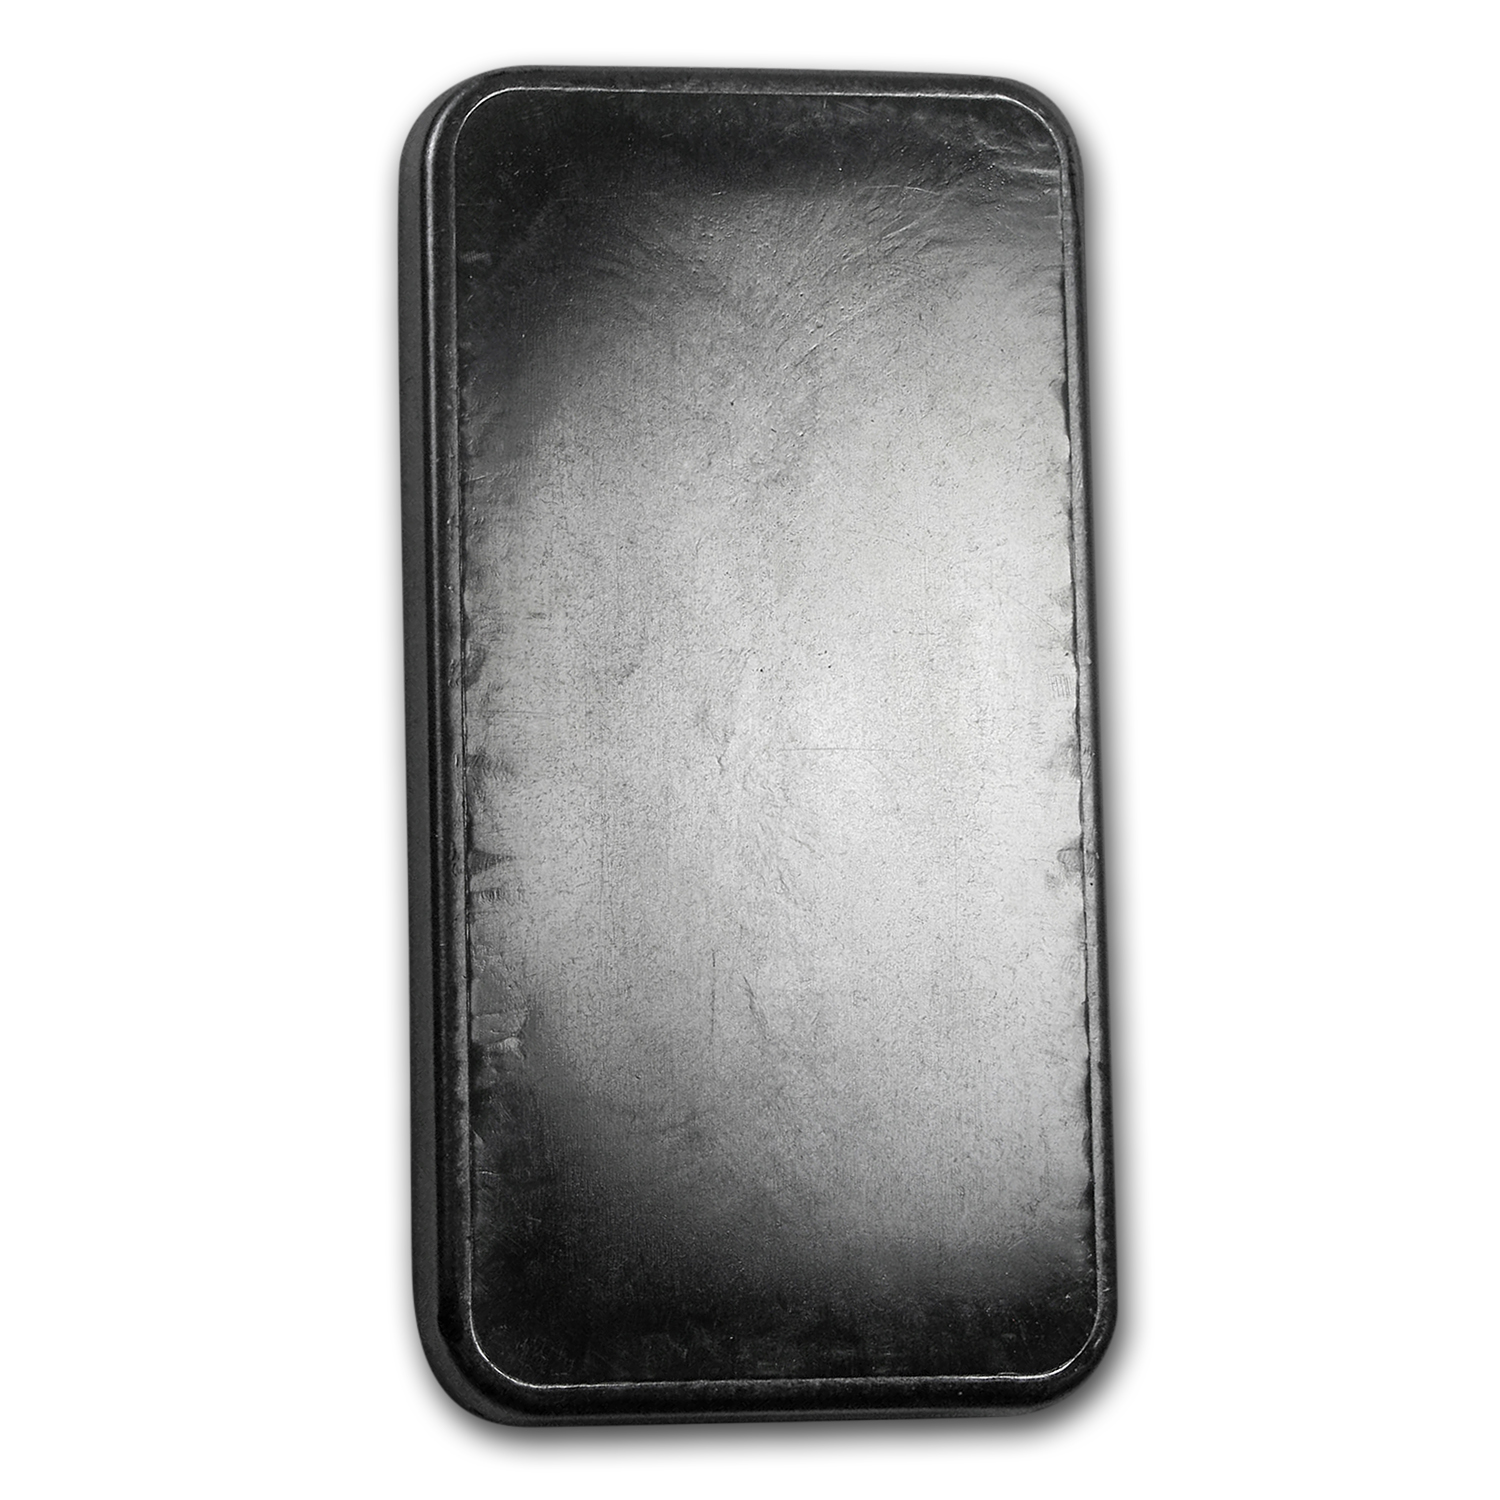 500 gram Silver Bar - Heraeus (Pressed)